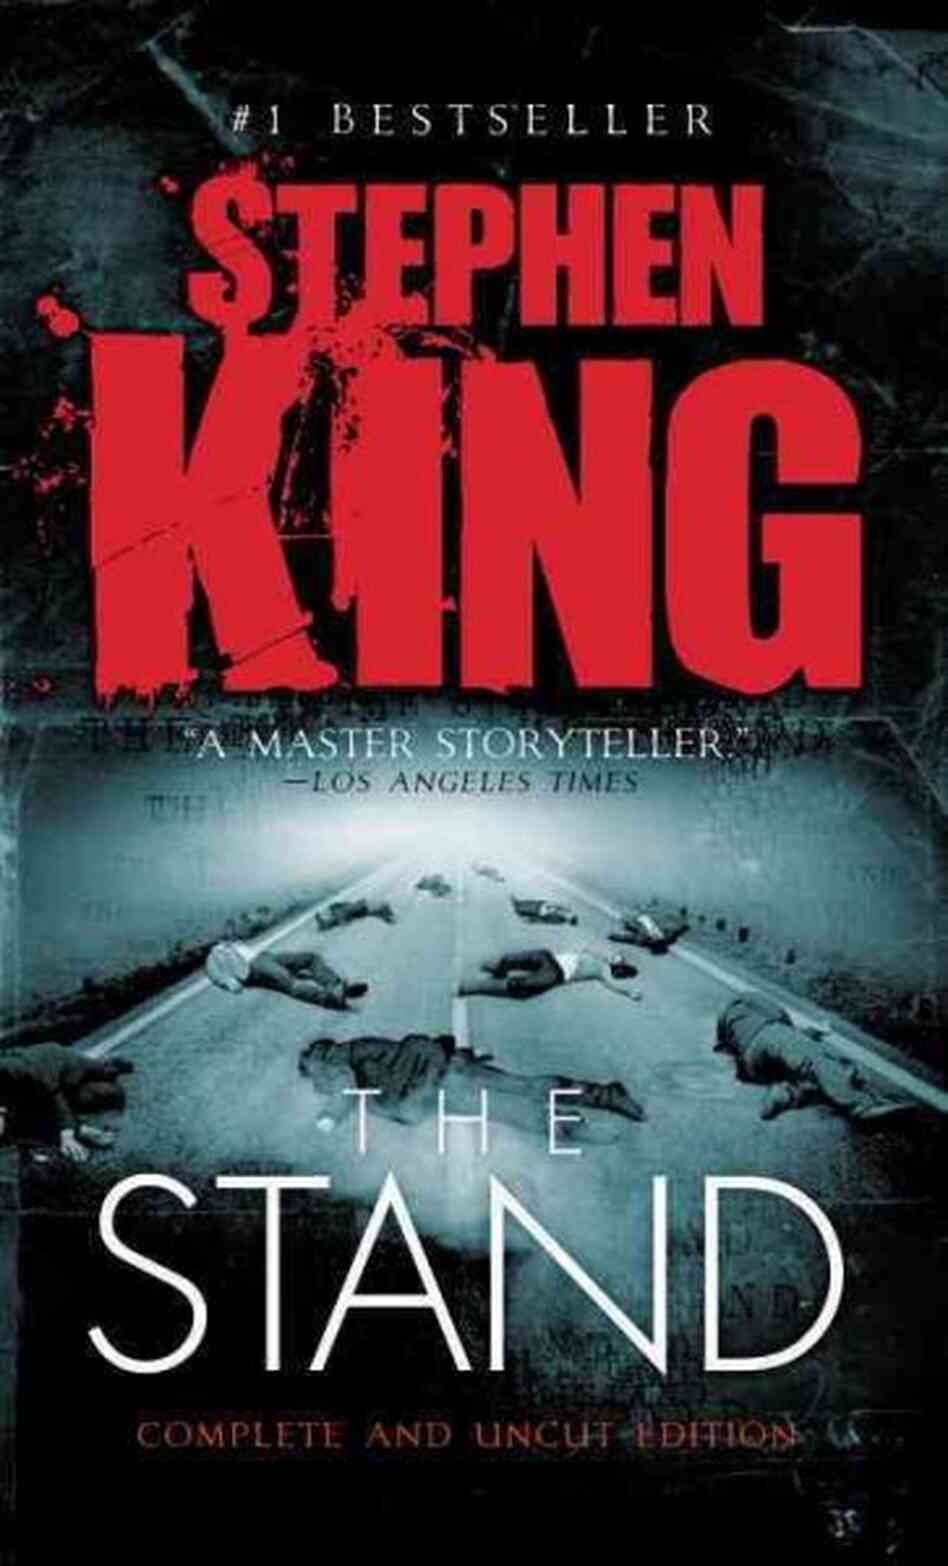 an analysis of the novel the stand by stephen king The stand: stephen king: 9780307743688: books - amazonca this item: the stand by stephen king mass market paperback cdn$ 1099 in stock ships from and sold by amazonca free shipping on orders over cdn$ 35 details it: a novel by stephen king paperback cdn$ 2429.